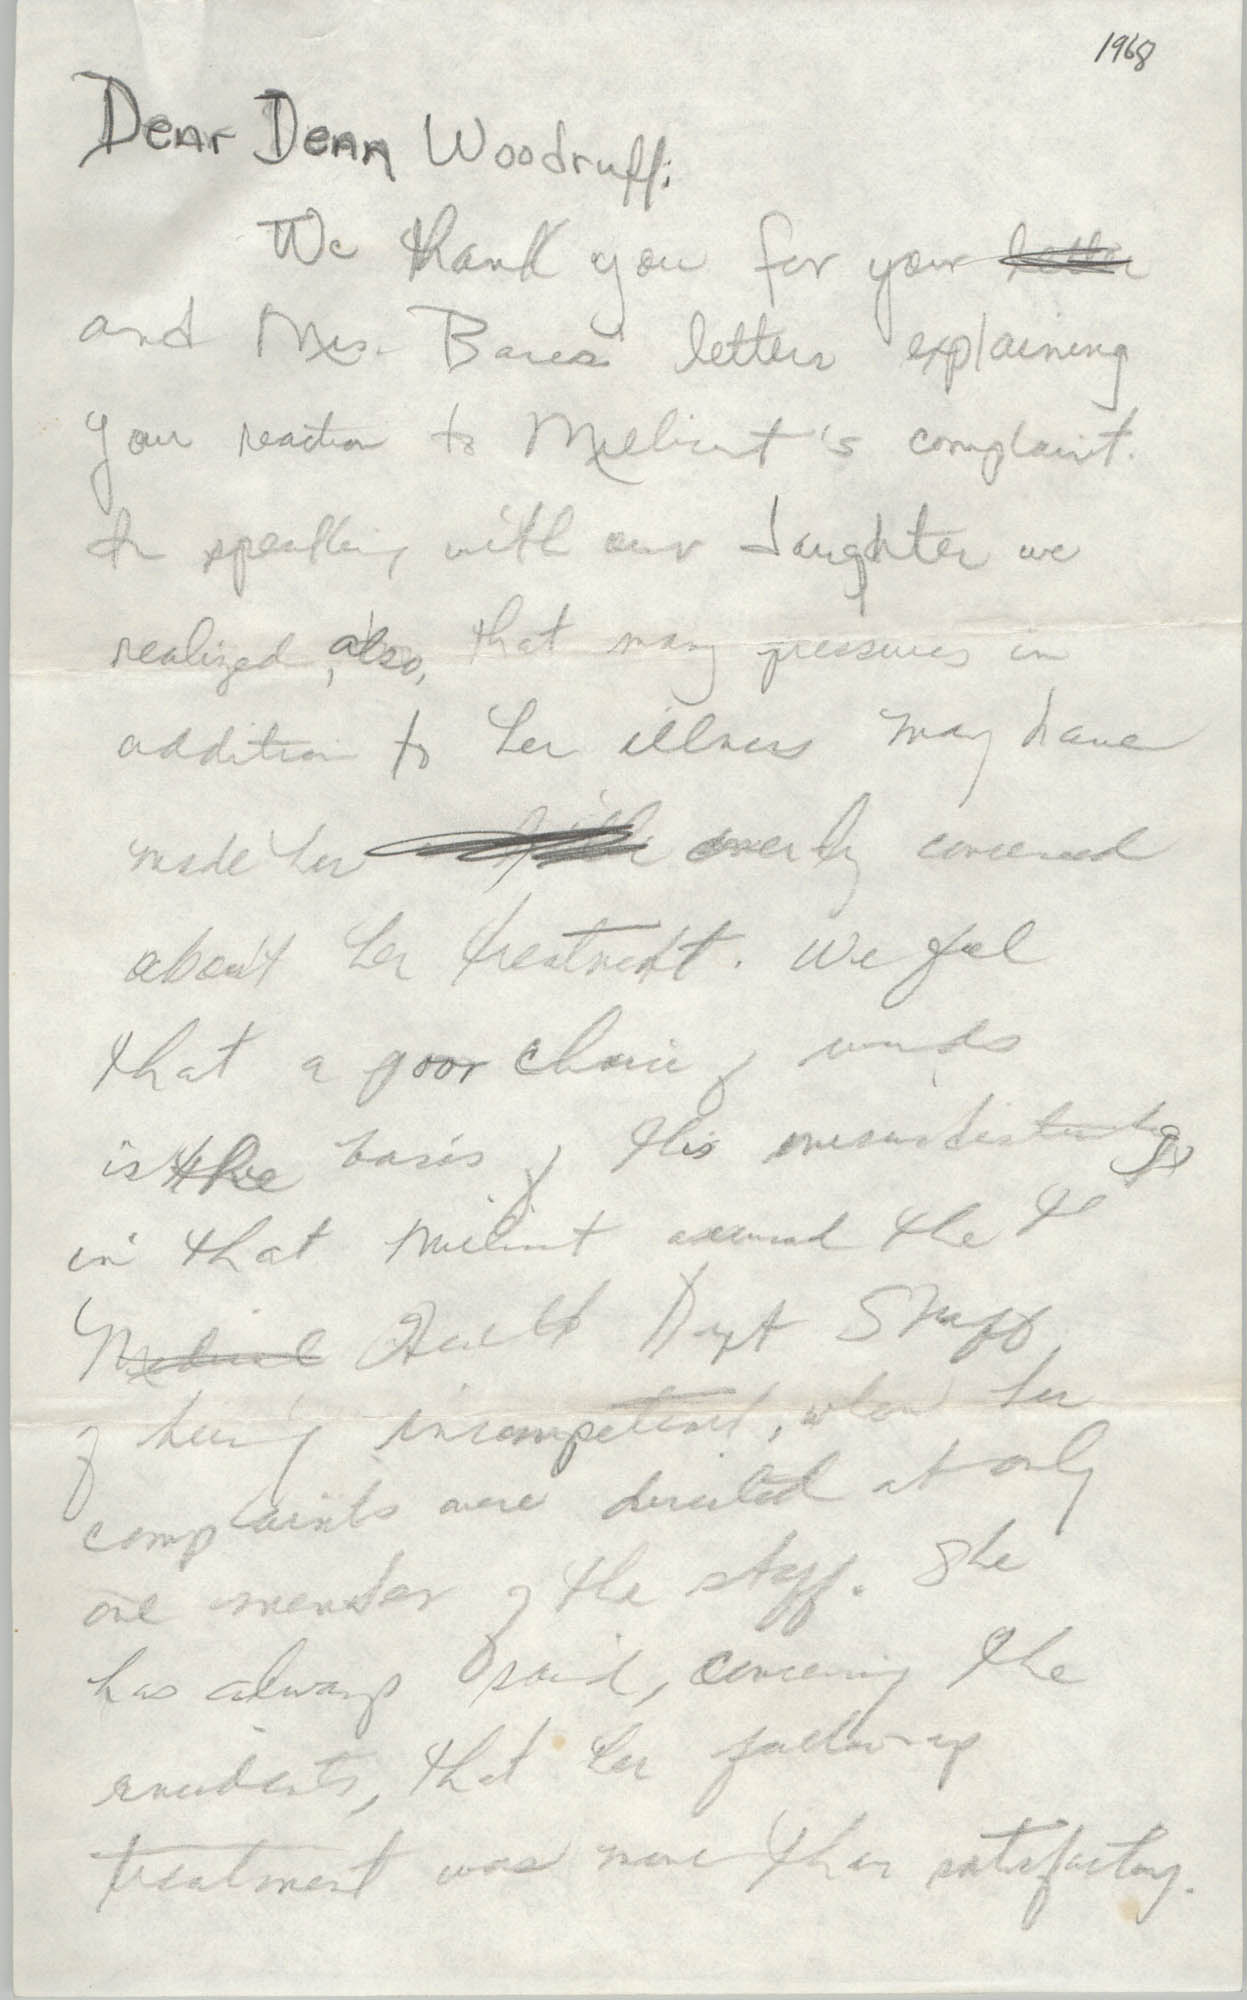 Letter to Oliver W. Woodruff, 1968